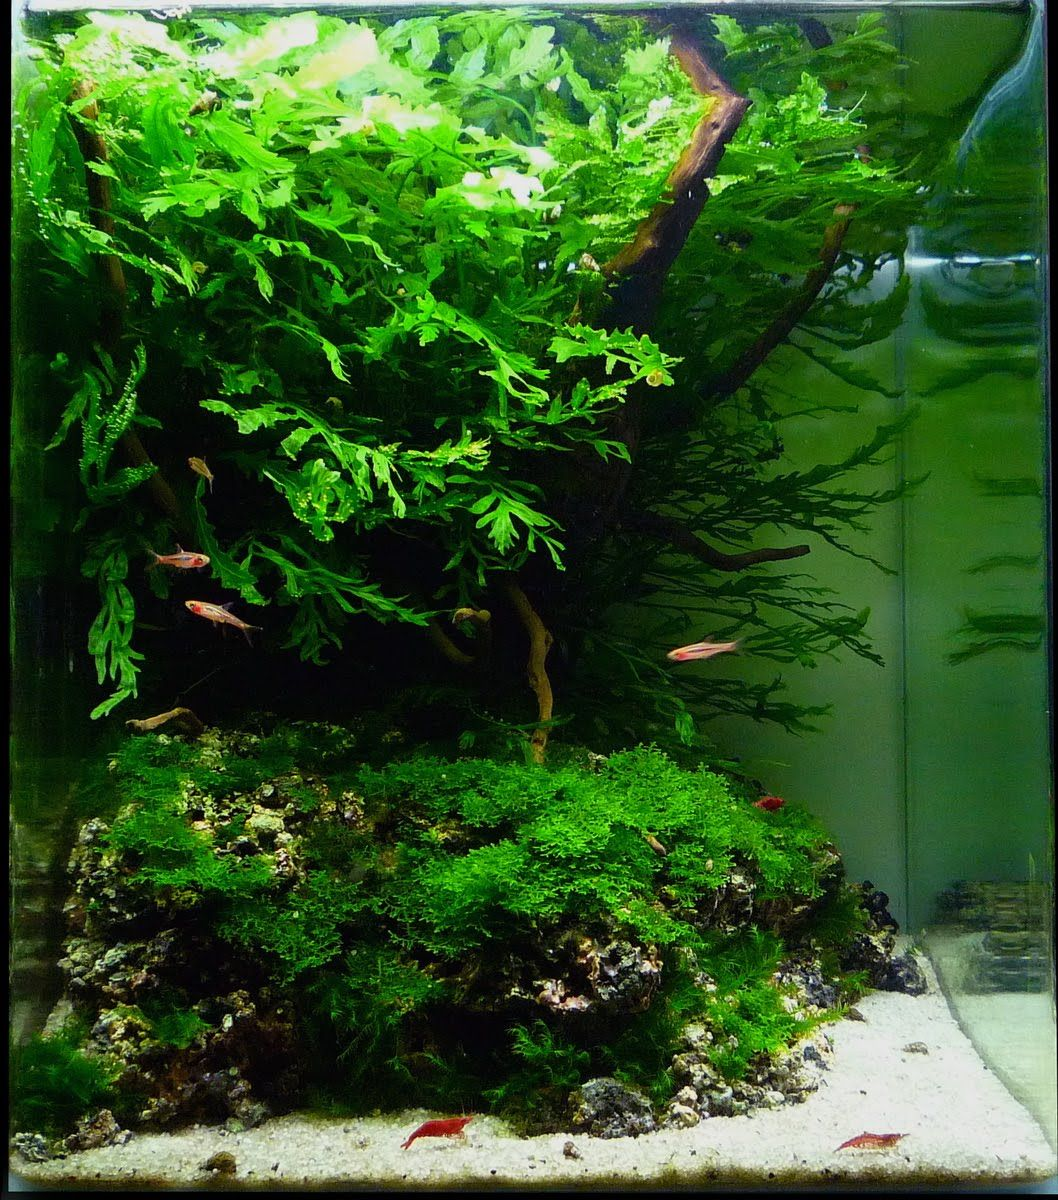 Freshwater aquarium fish by size - Manage Your Freshwater Aquarium Tropical Fishes And Plants Aquatic Scapers Europe International Aquascaping